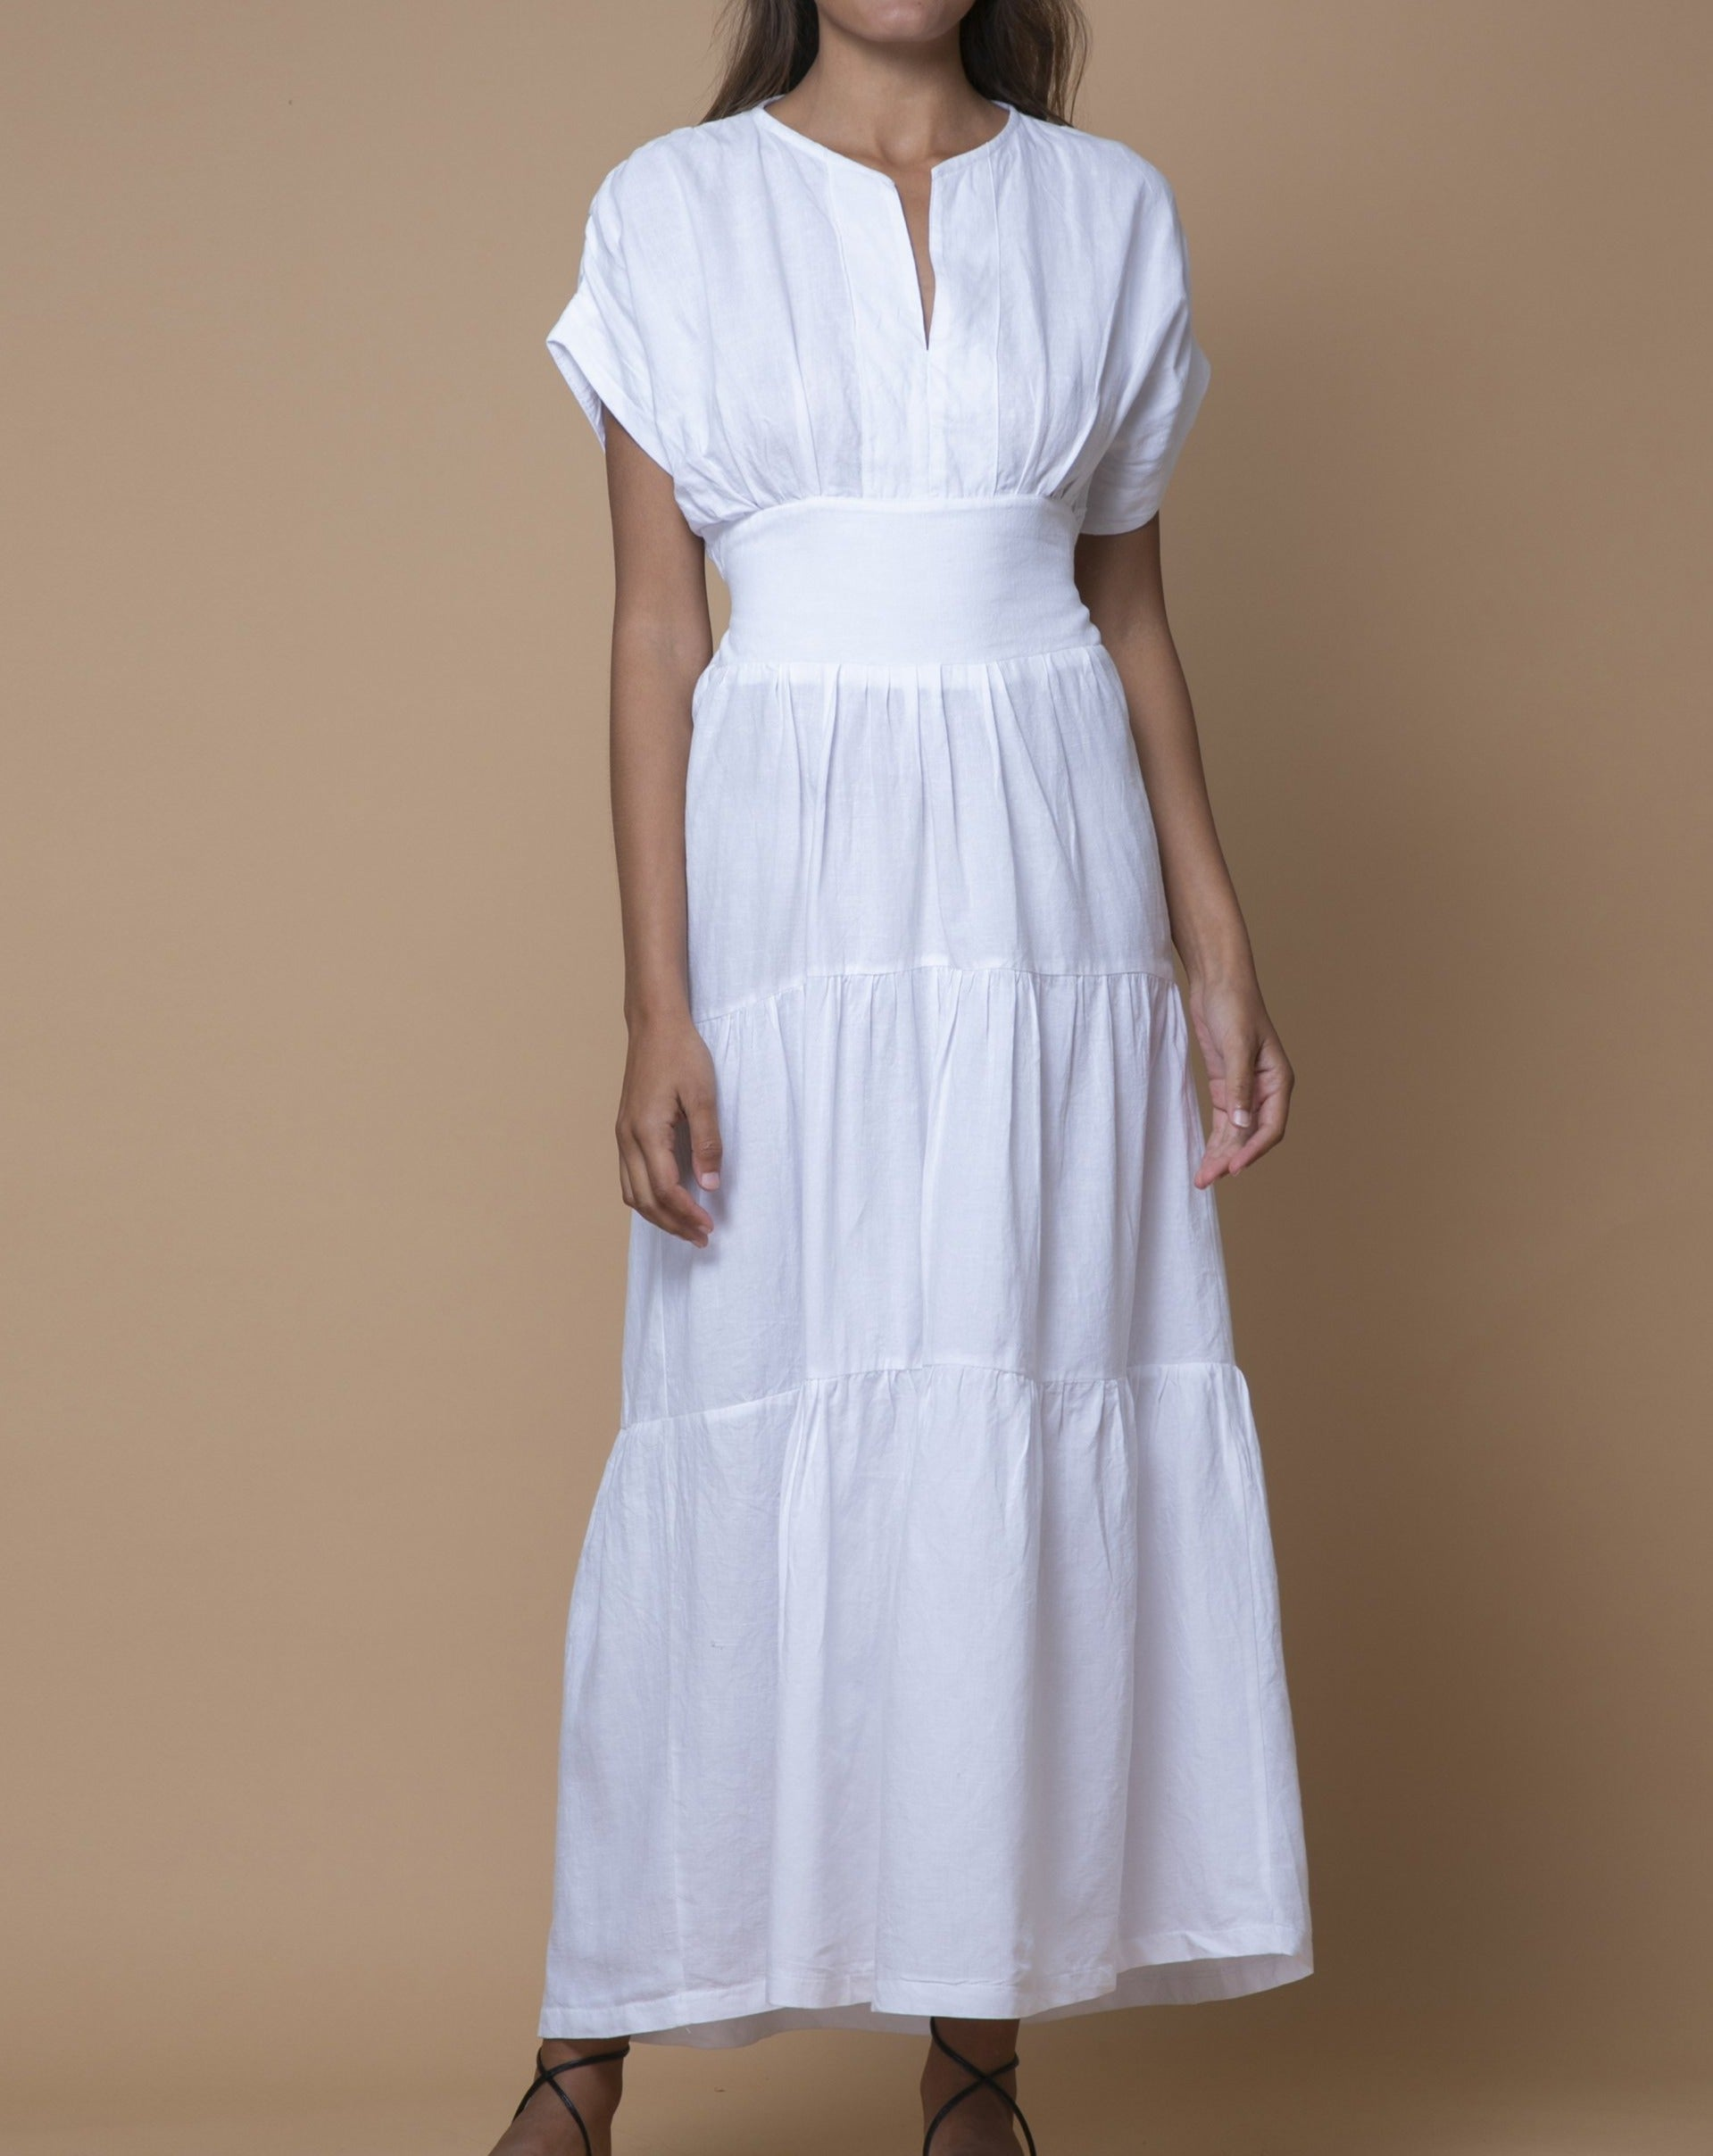 White Australian Handmade Premium Detailed Panel V-Neck Full Length Tiered Dress with Short Sleeves & Detailed Waist Boutique Designer Summer Casual Cocktail